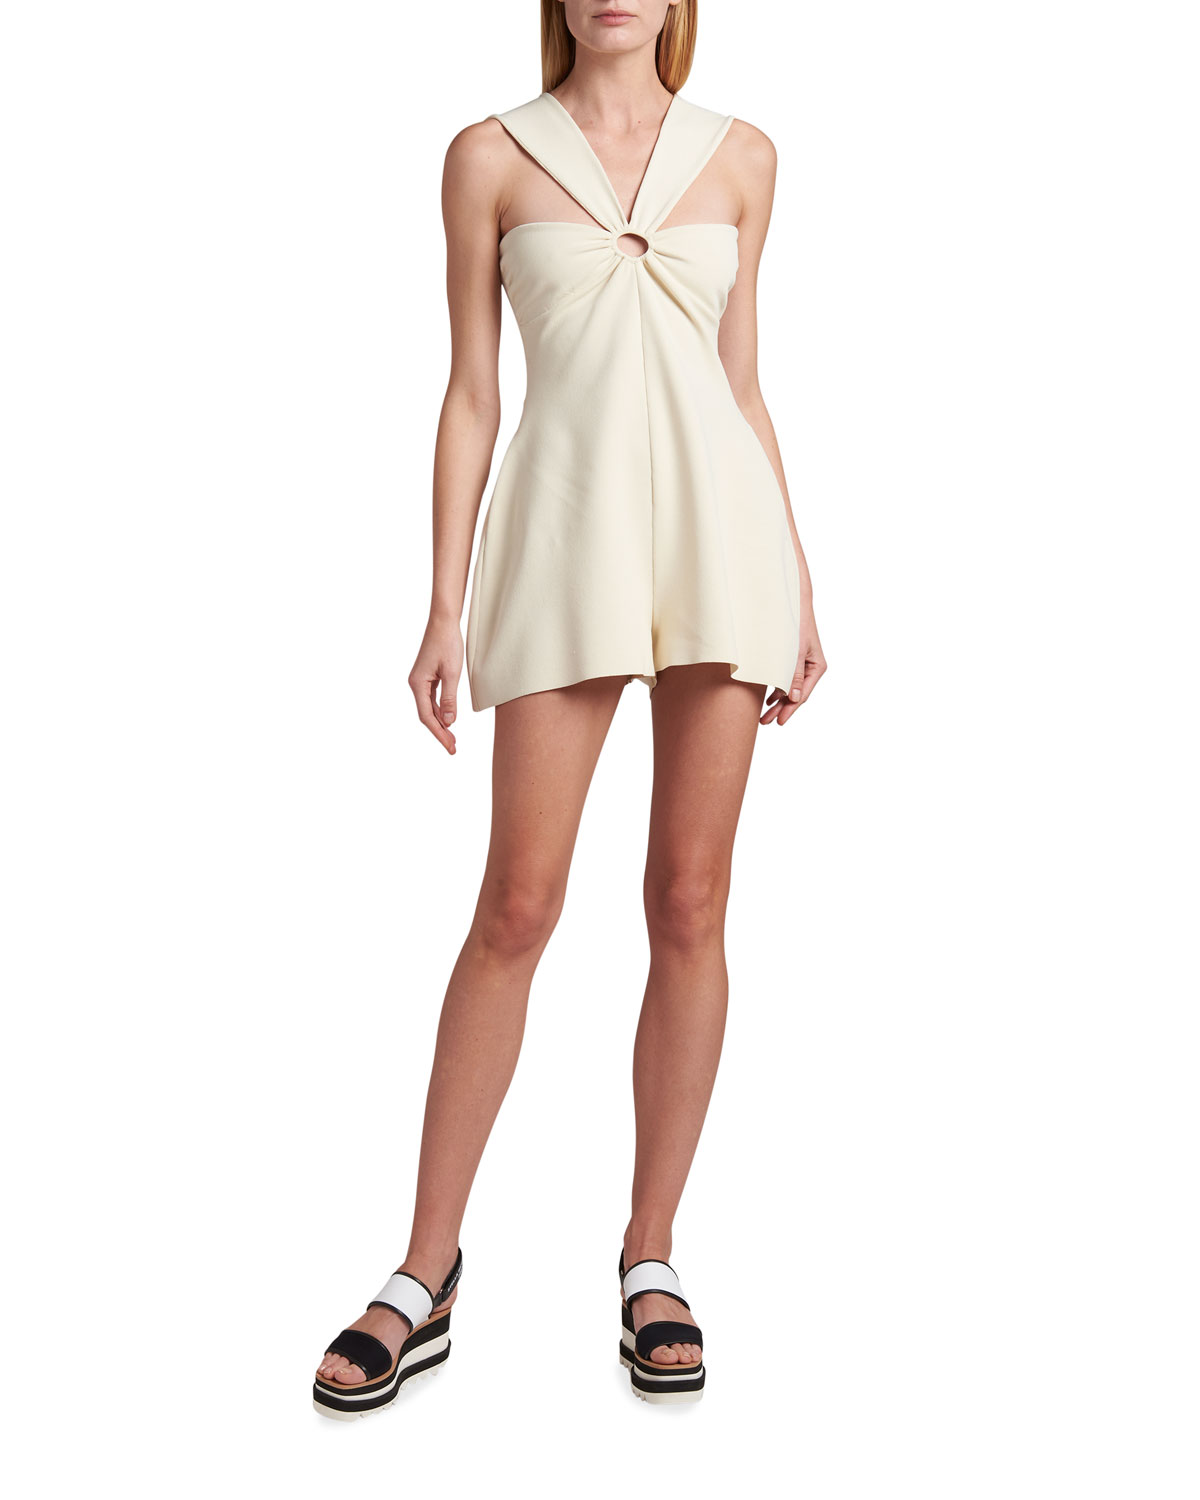 Stella Mccartney COMPACT KNIT O-RING ROMPER